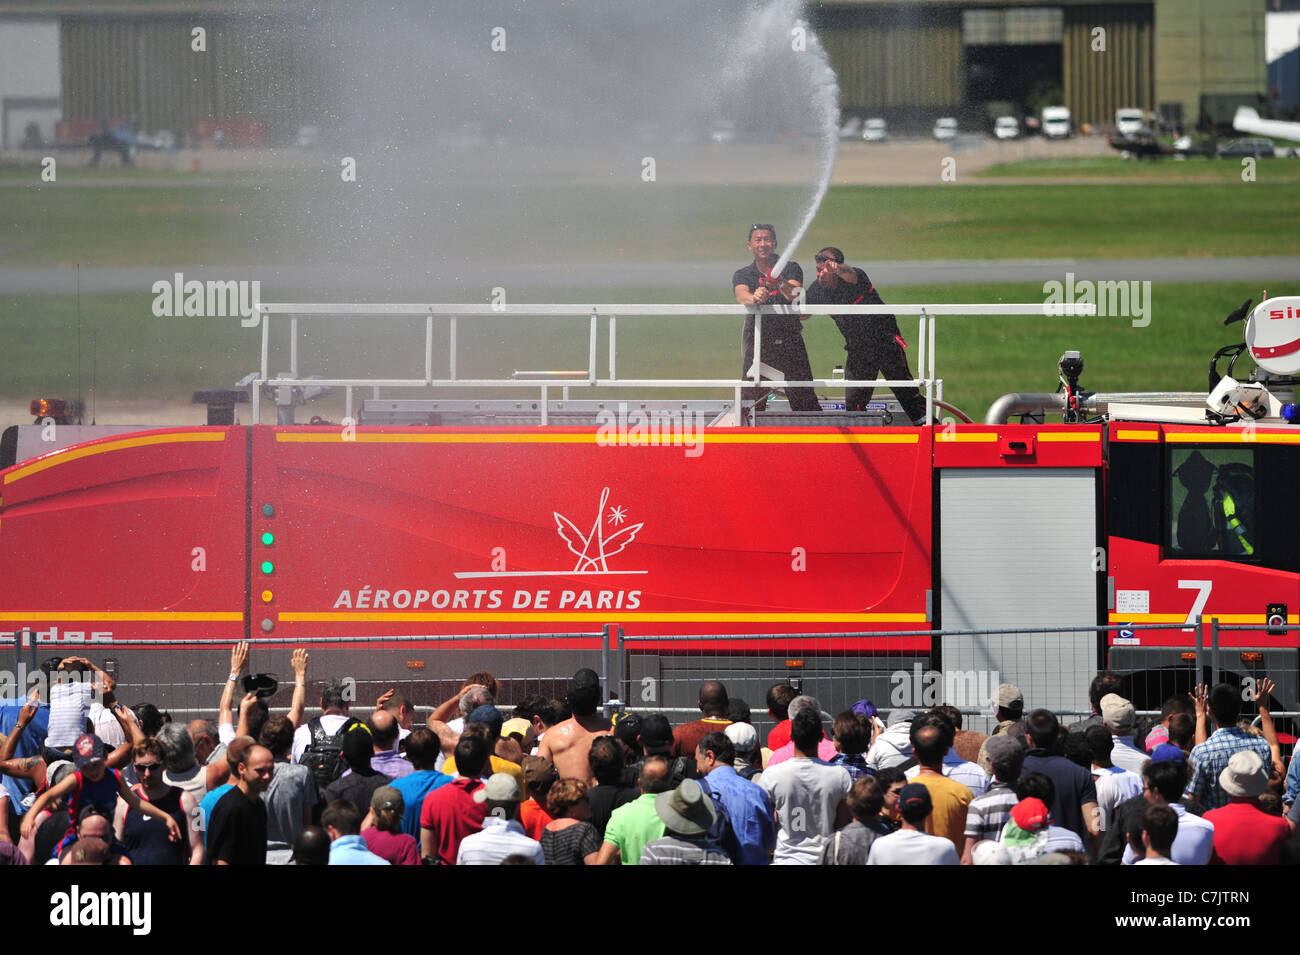 French Firefighters cooling crowd during  extremely hot weather, at Le Bourget airshow 2011 - Stock Image